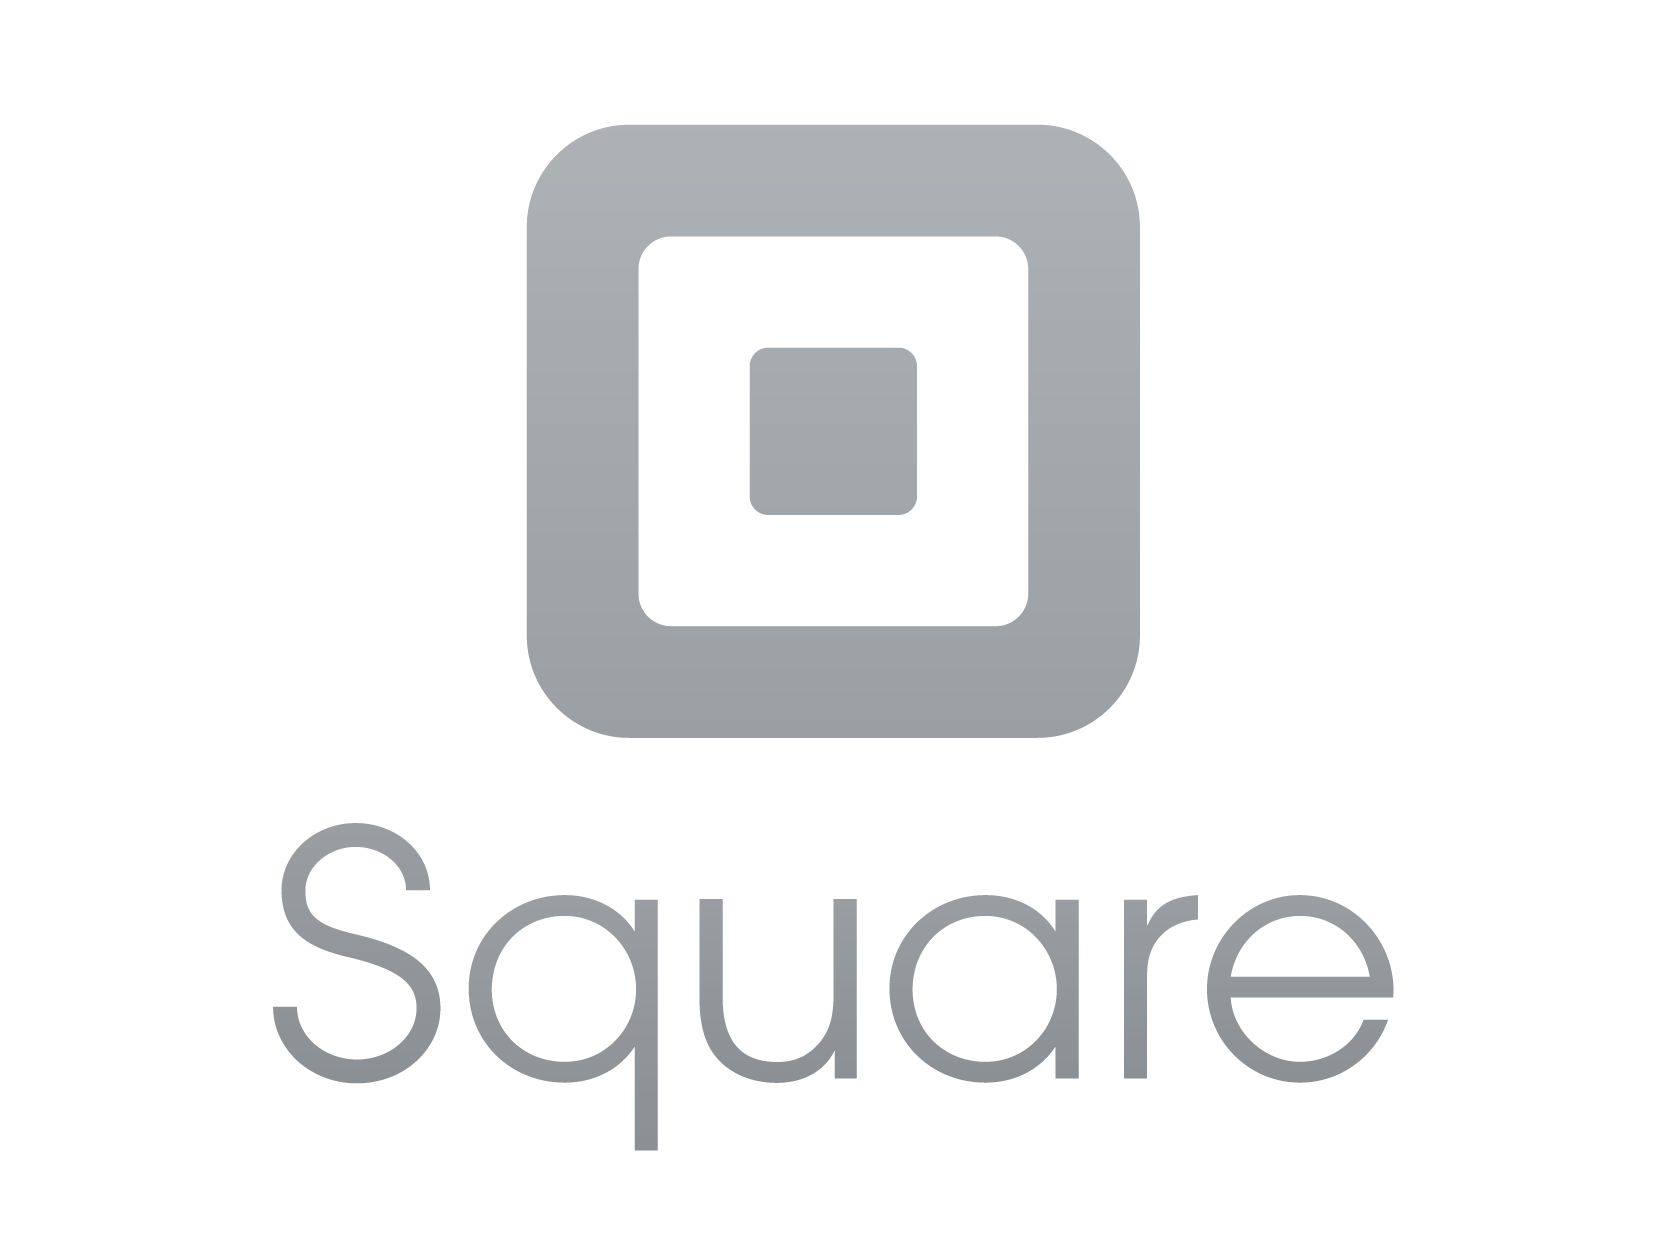 The Week in Technology: Square launches Square Cash, Apple hires fashion mogul, and more